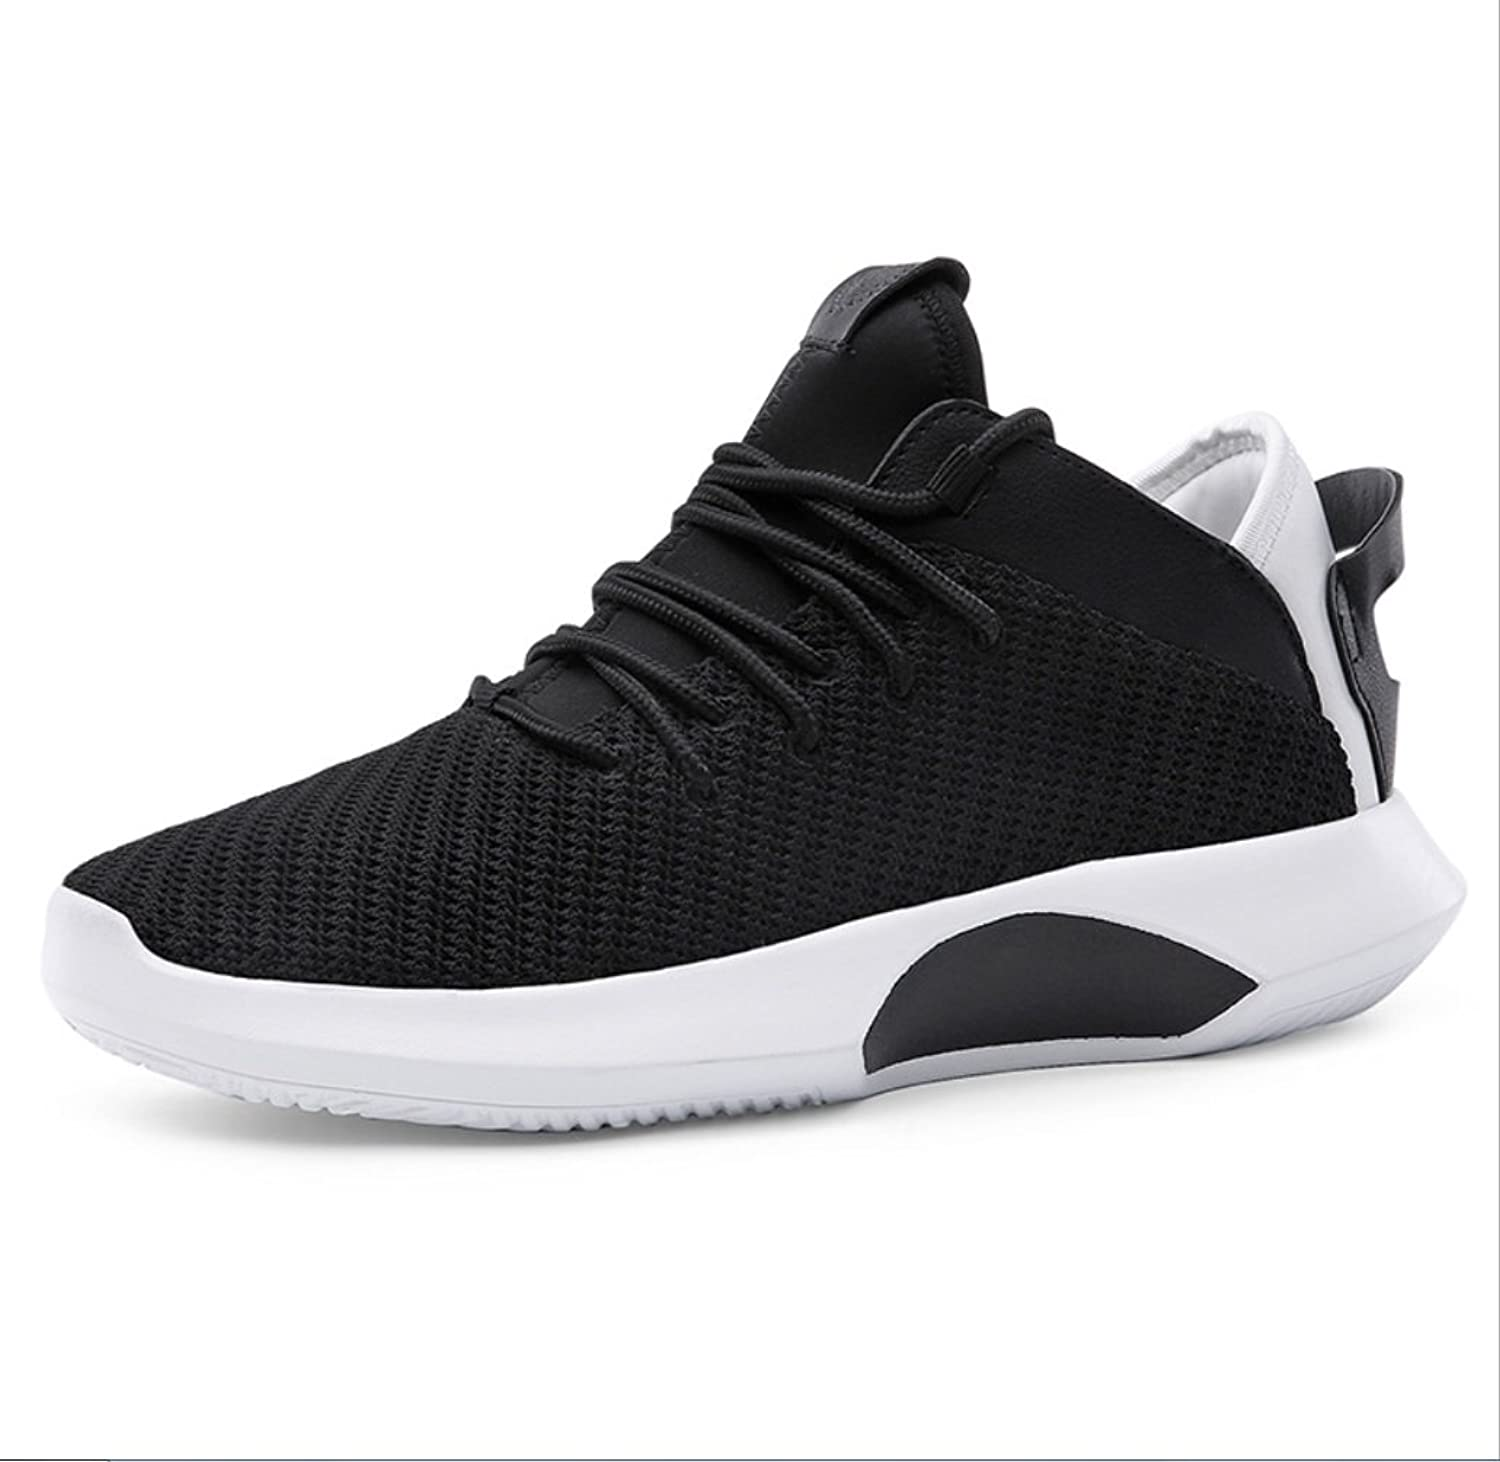 SHANGWU Men's shoes Men's Lightweight Casual shoes Summer Men's shoes Marathon Running shoes Student Mesh Breathable Running shoesMen's Wear-resistant shock-absorbing basketball shoes